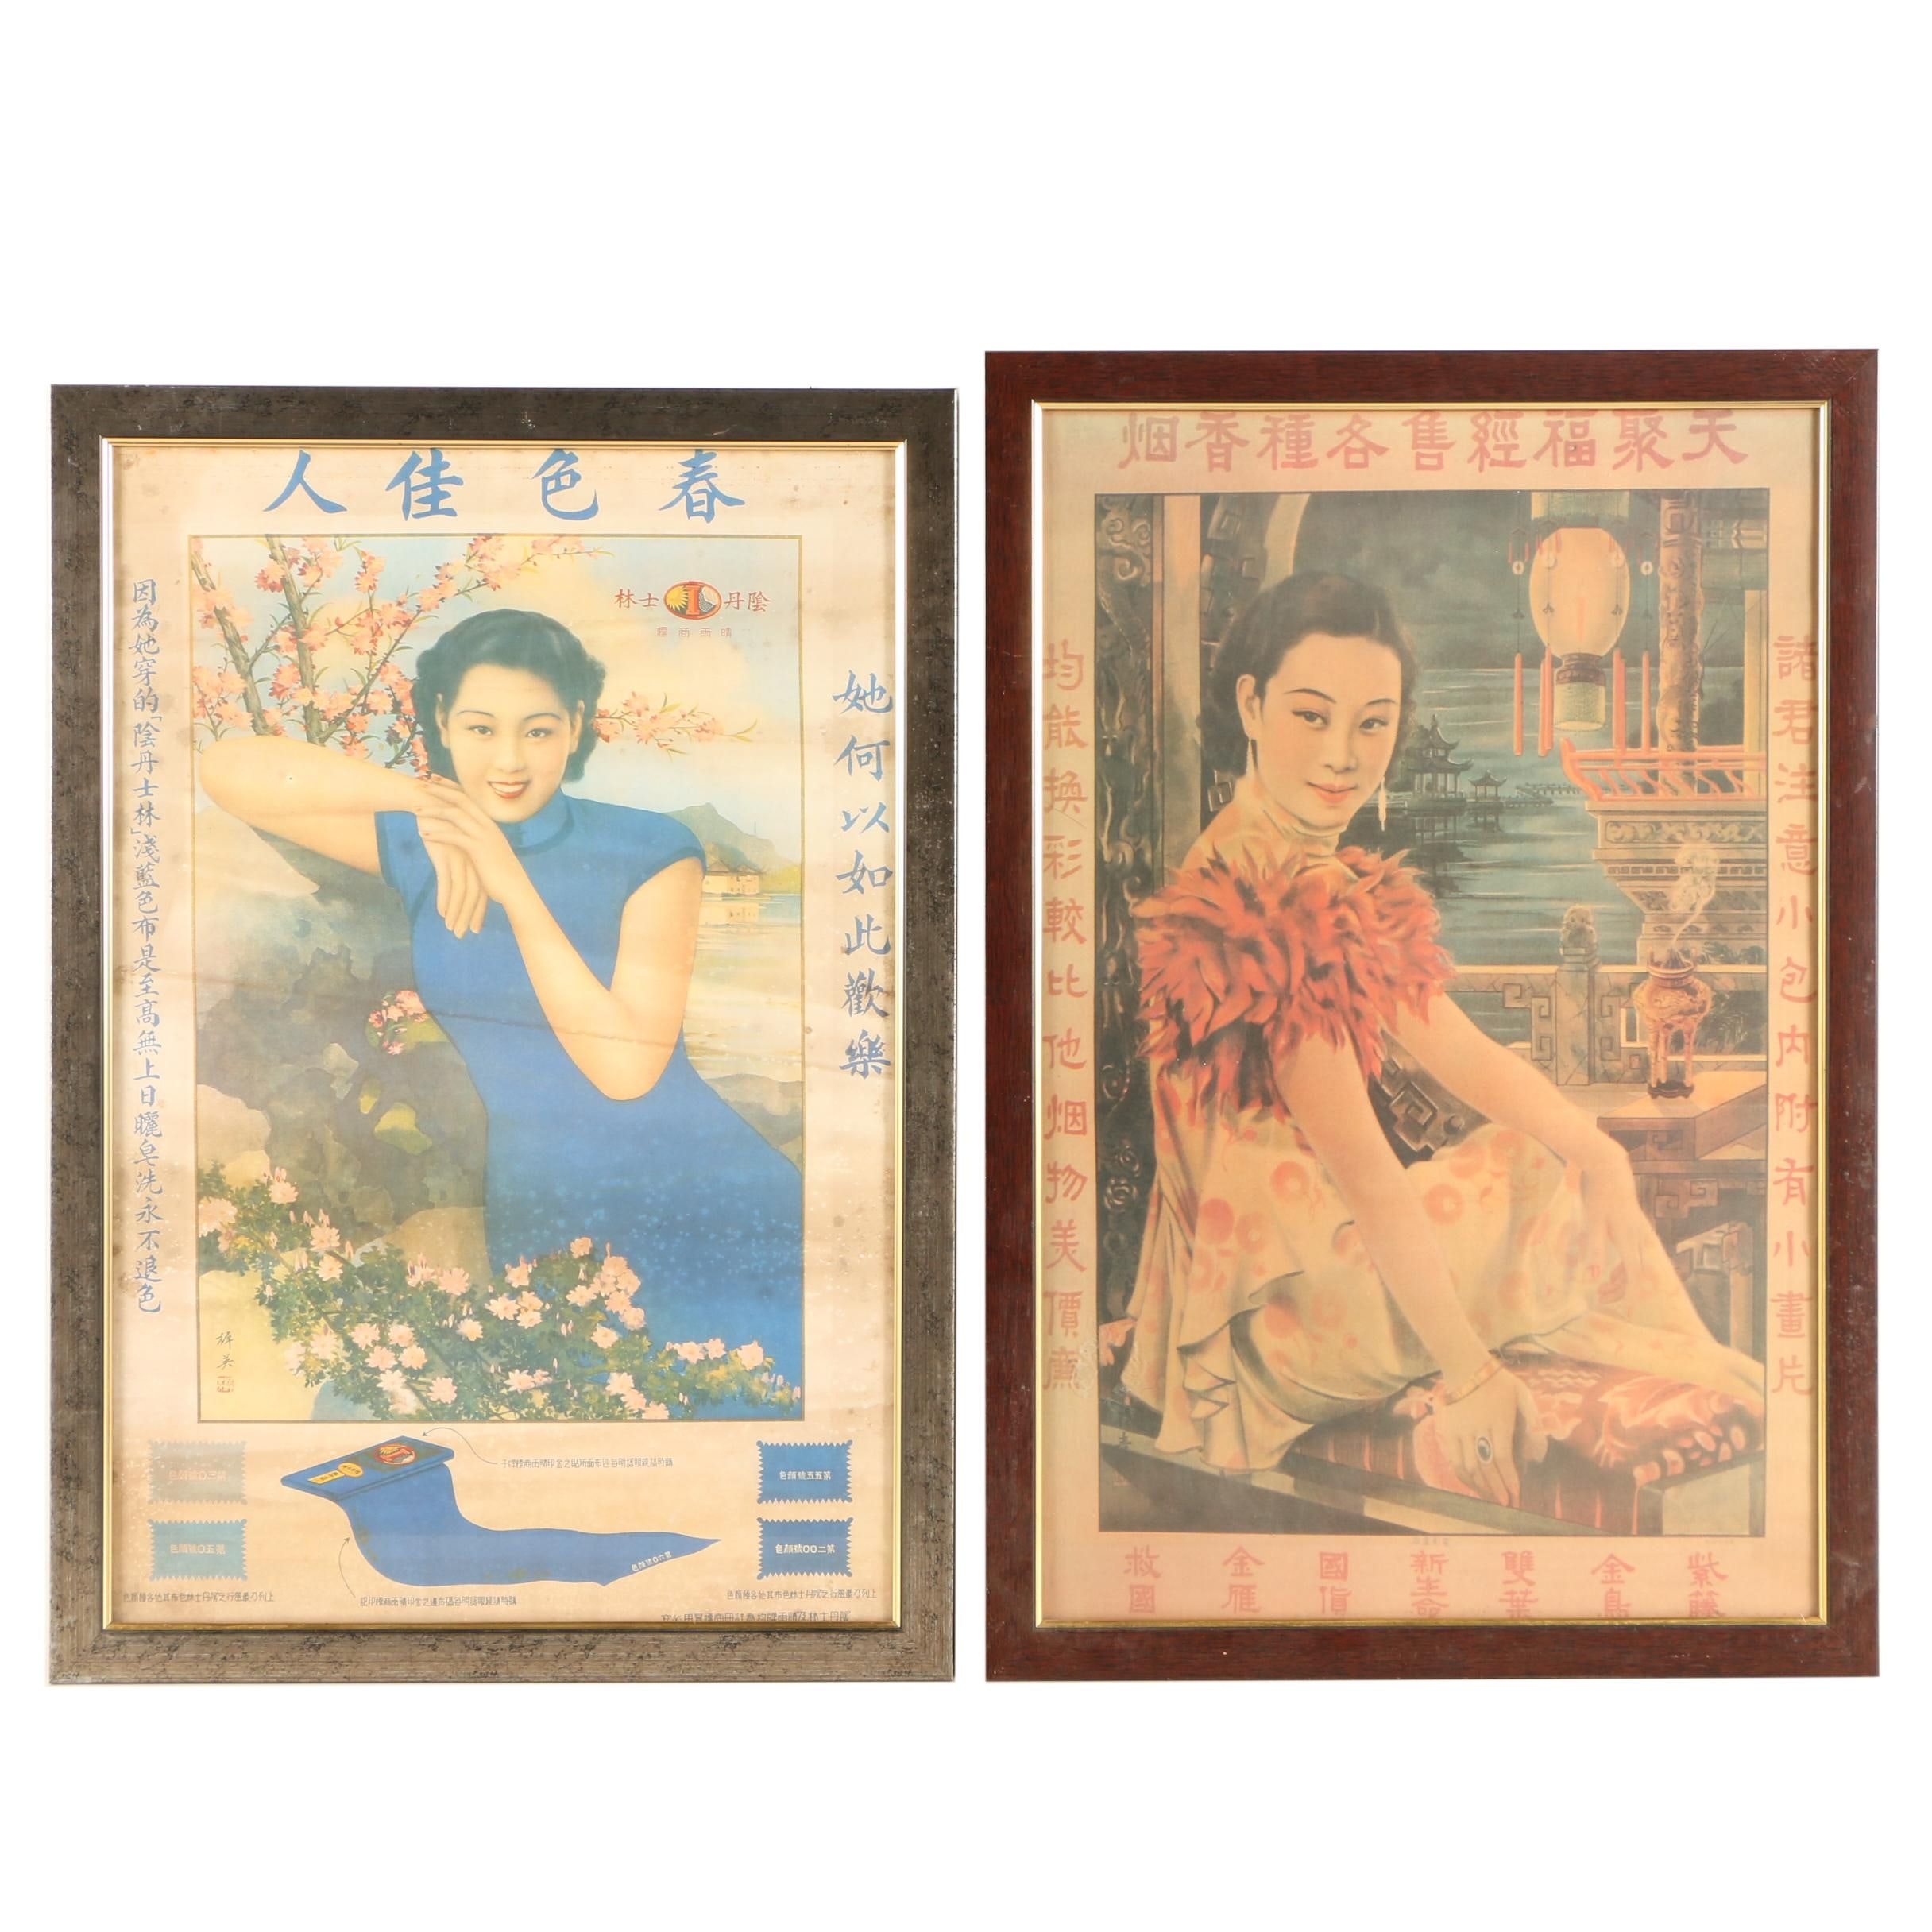 Two Offset Lithographs After Mid-Century Chinese Advertising Posters